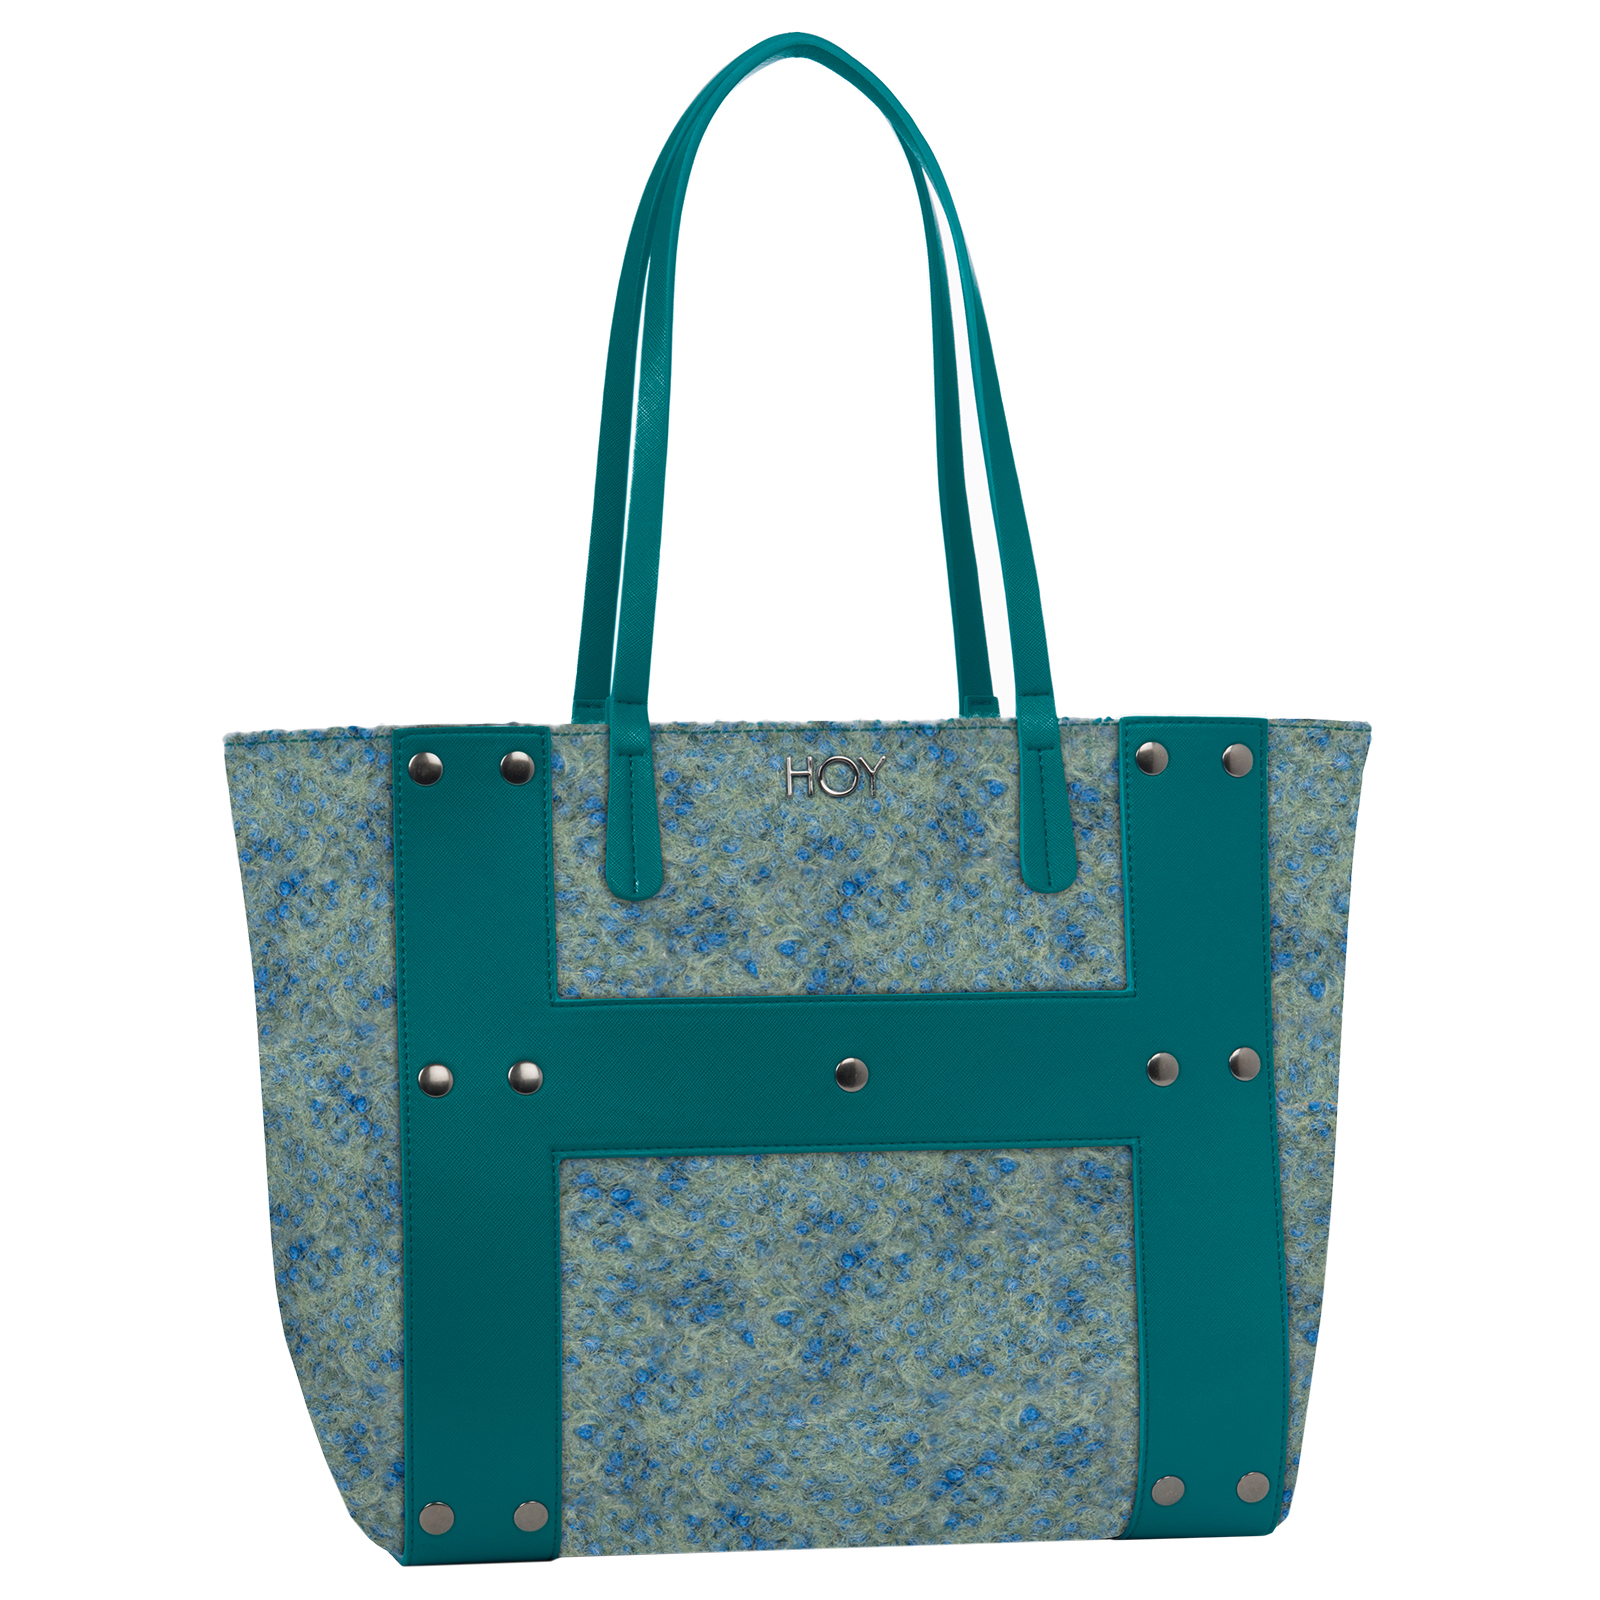 BORSA A SPALLA Fashion bag reversibile - HOY BOUCLE